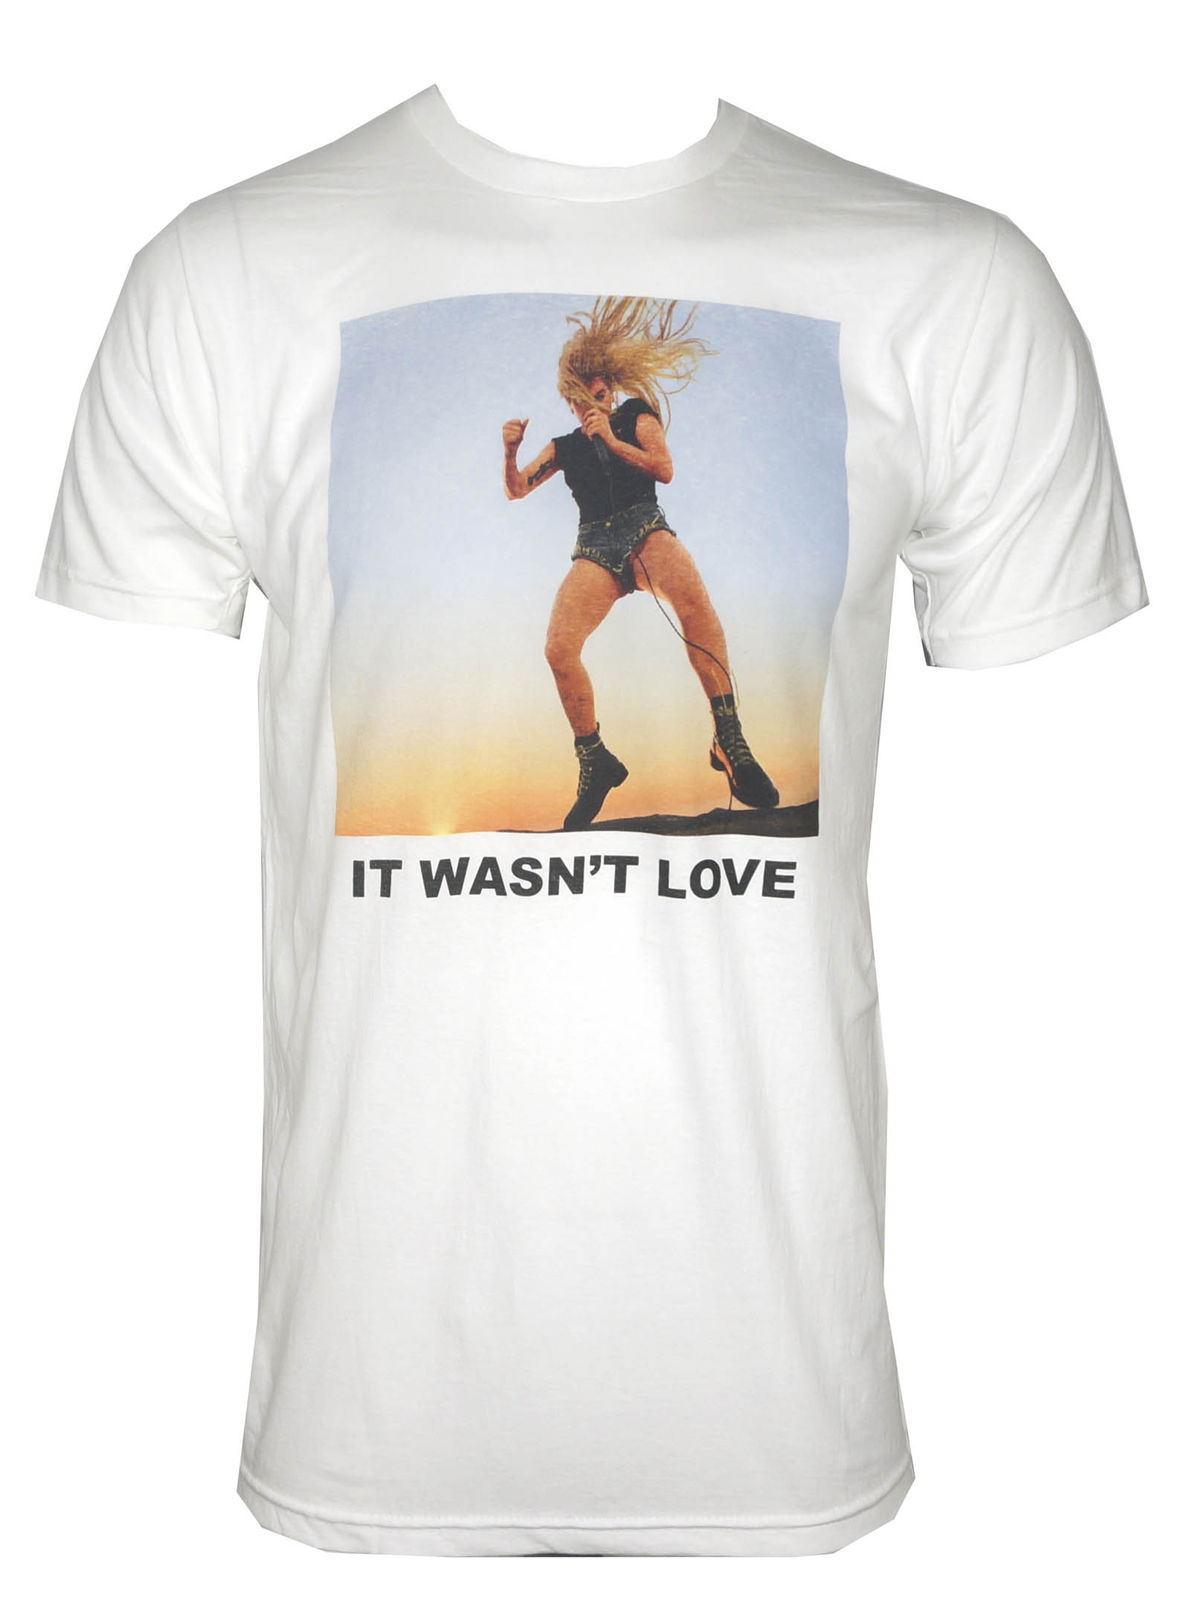 Authentic LADY GAGA It Wasnt Love White T-Shirt S-XL NEW